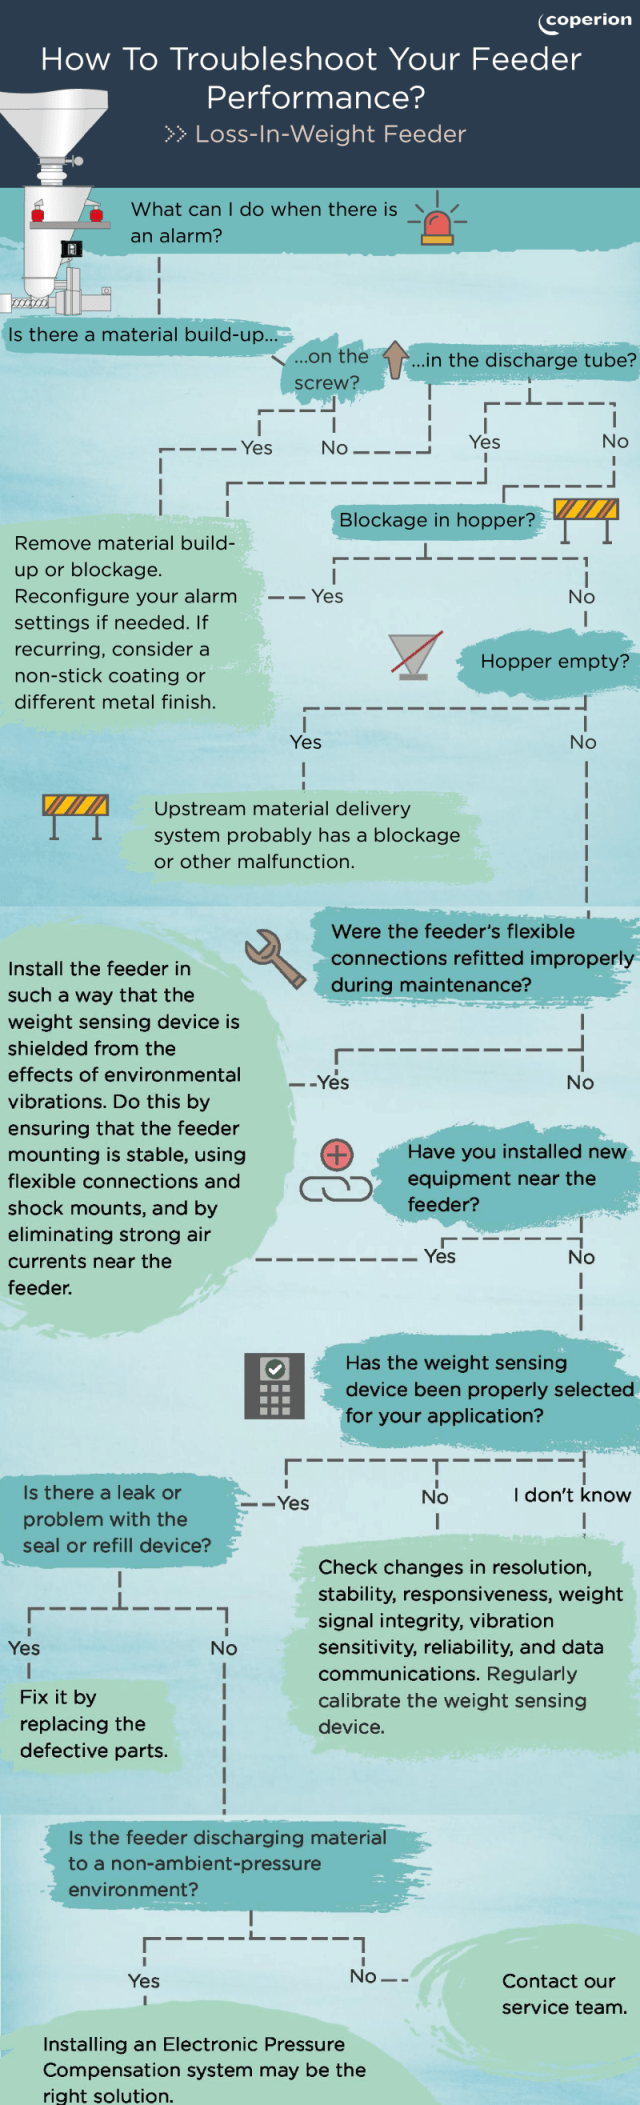 How to Troubleshoot Your Feeder Performance?